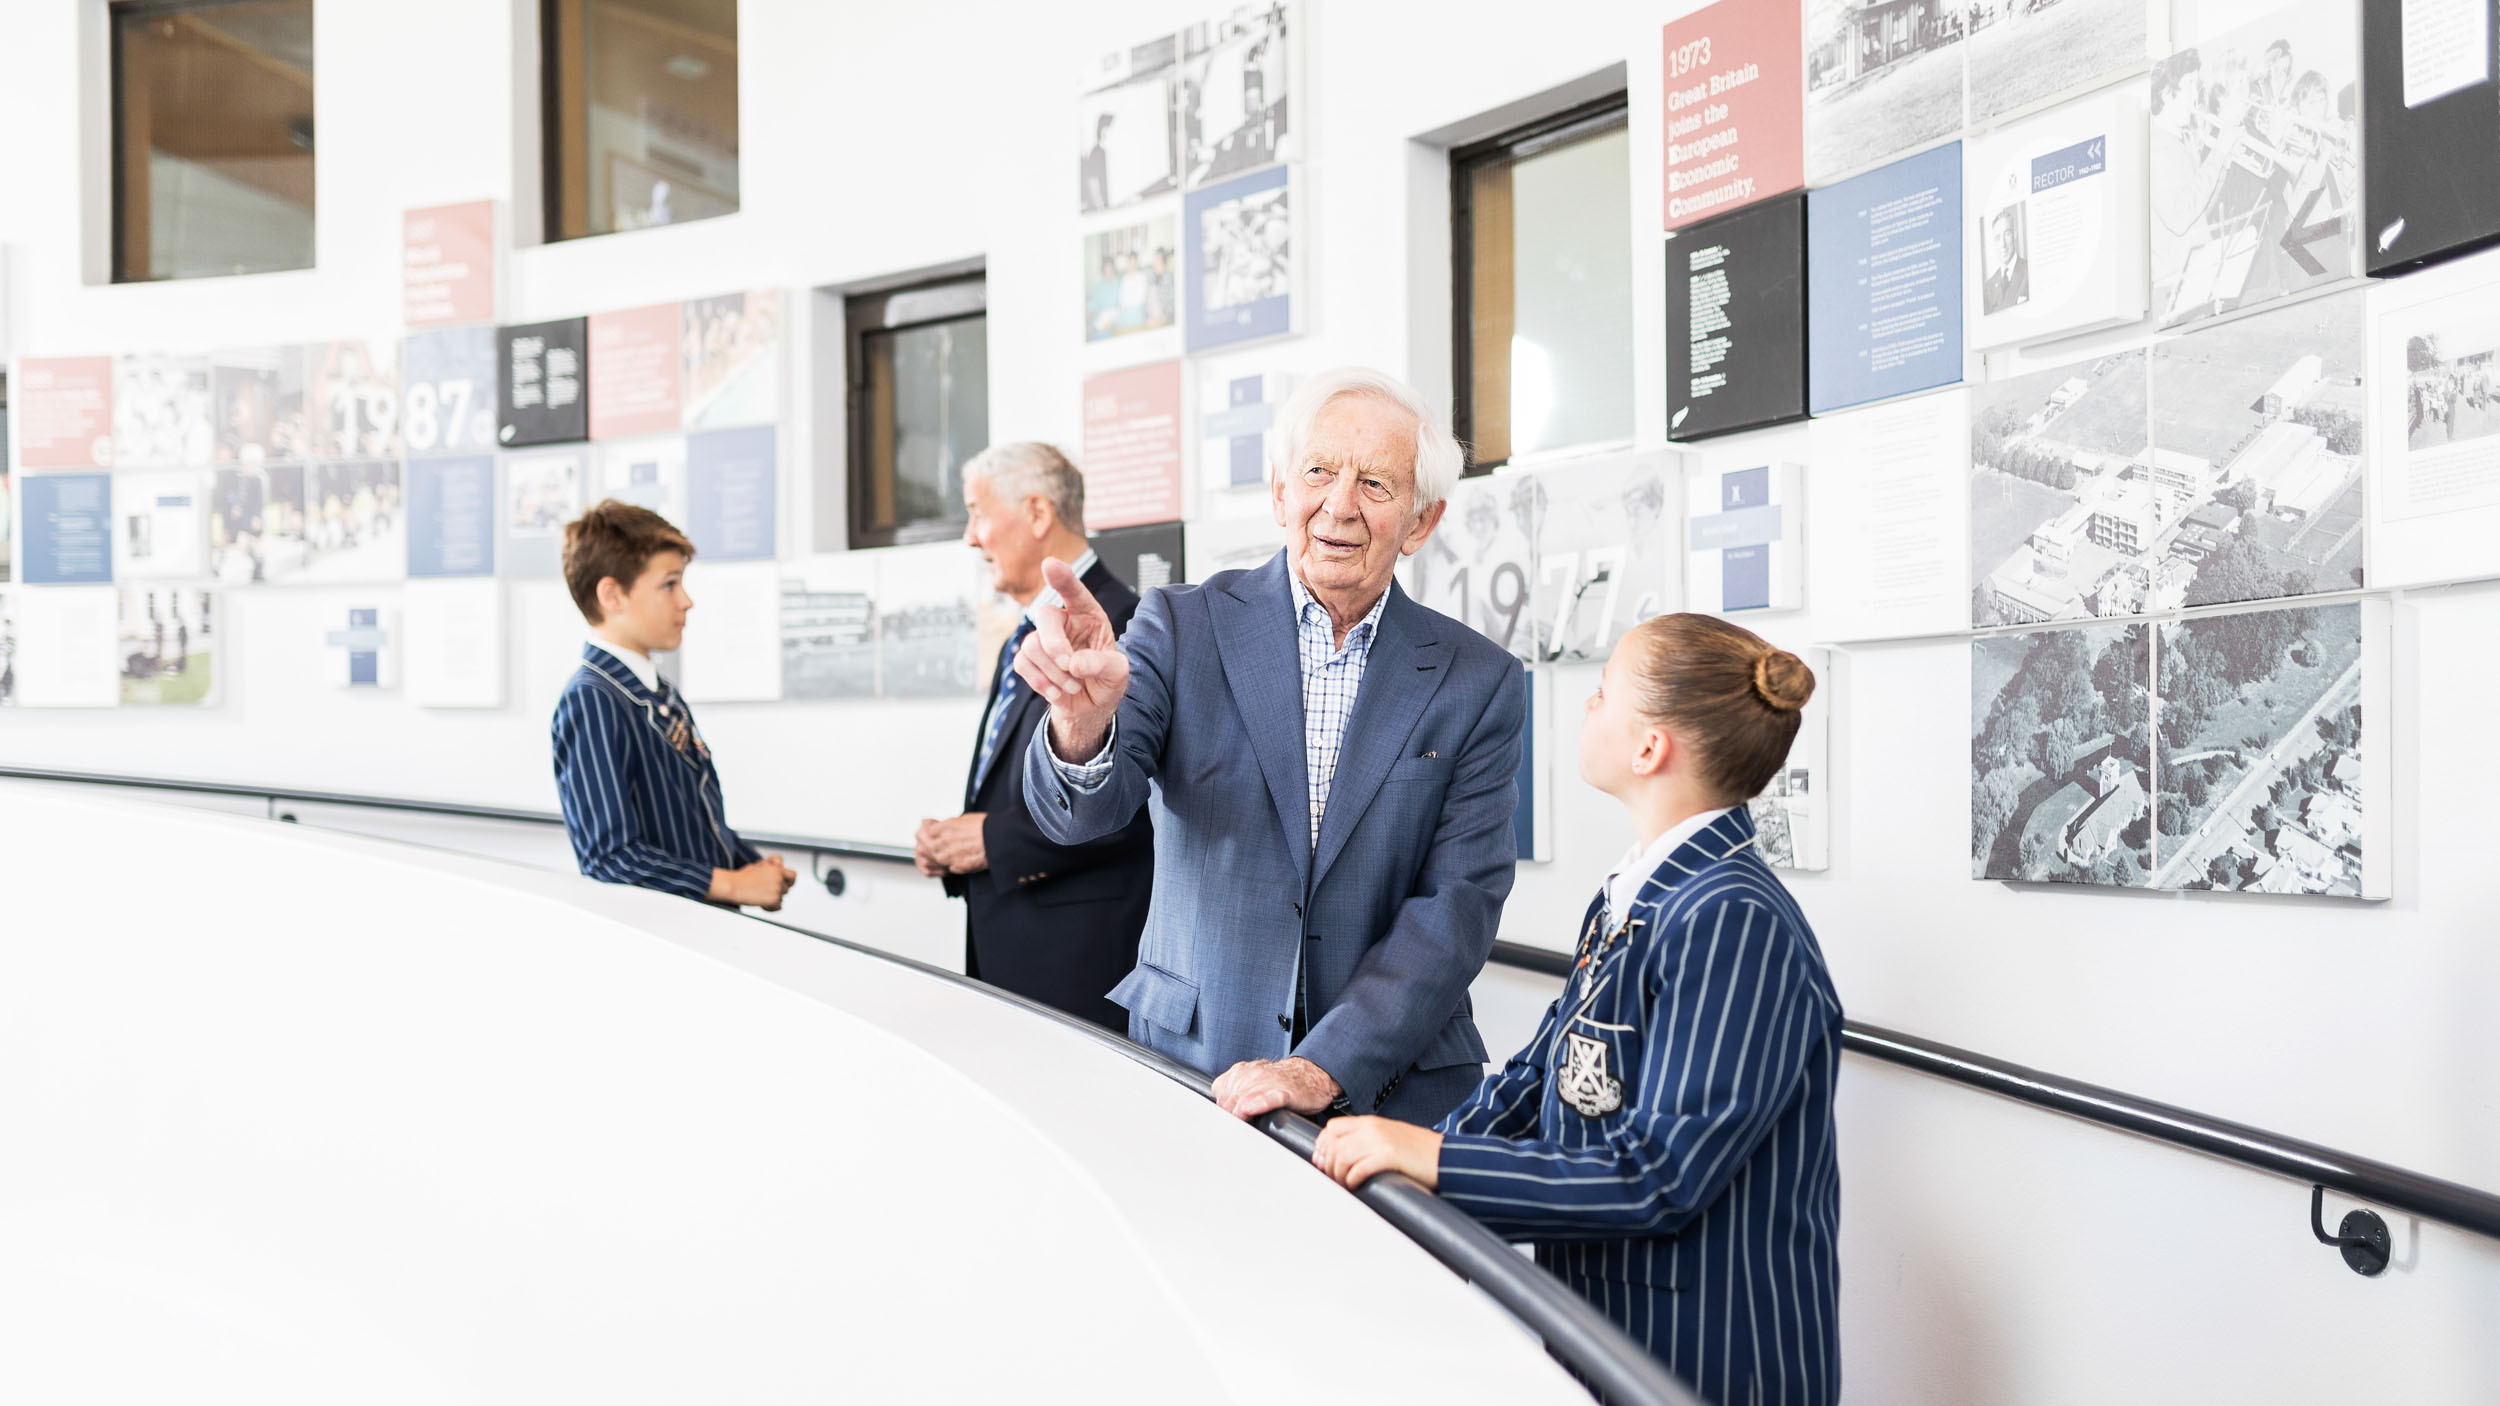 St Andrews College advertising photography